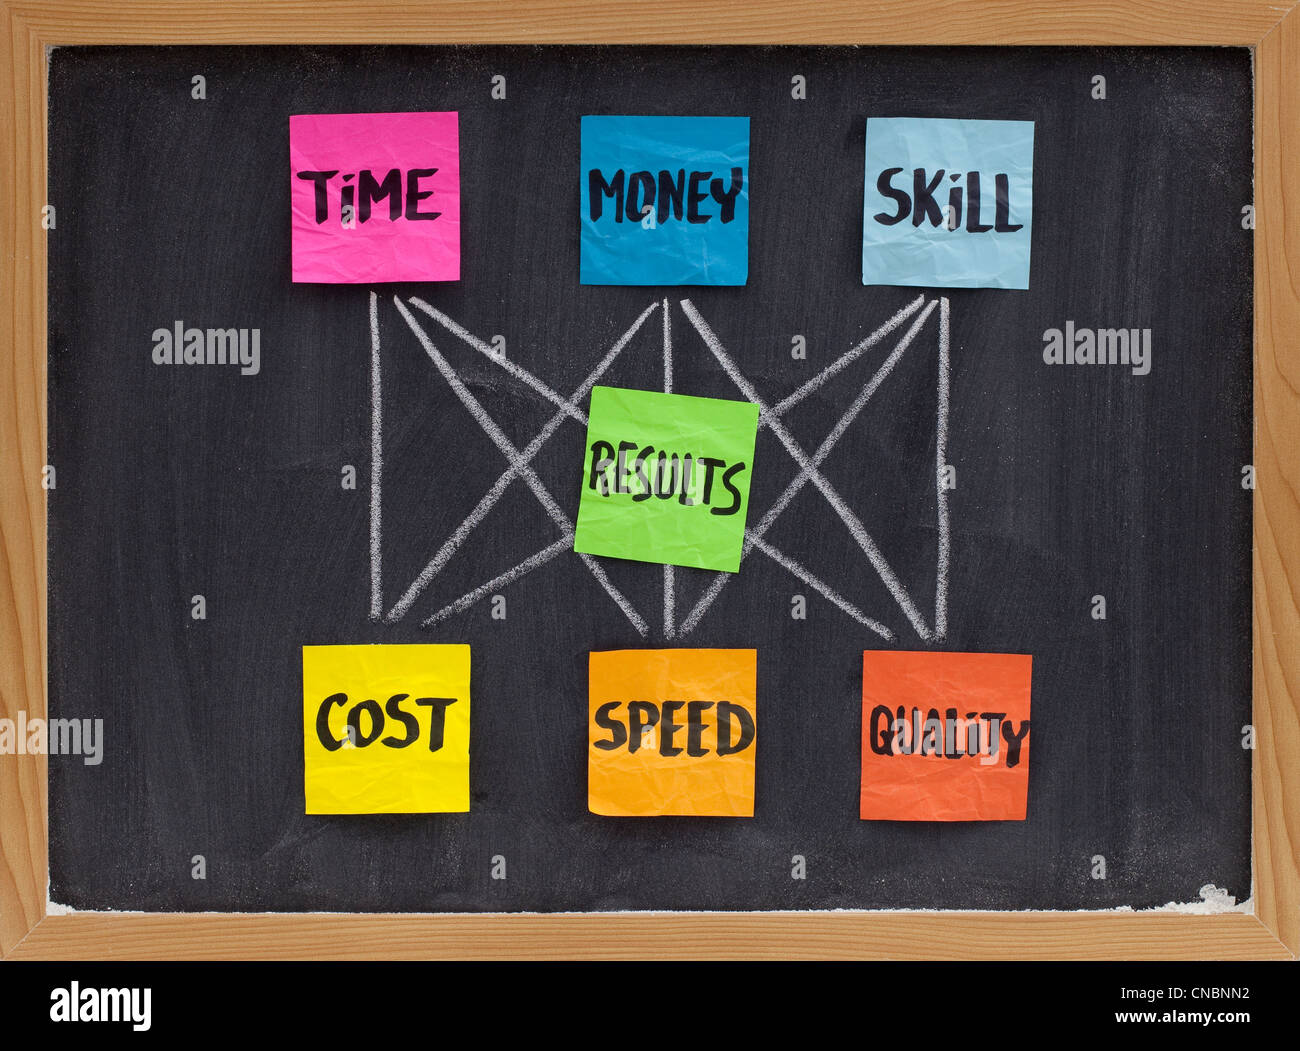 management concept of balance between invested time, money, skill and cost, speed, quality of results - Stock Image